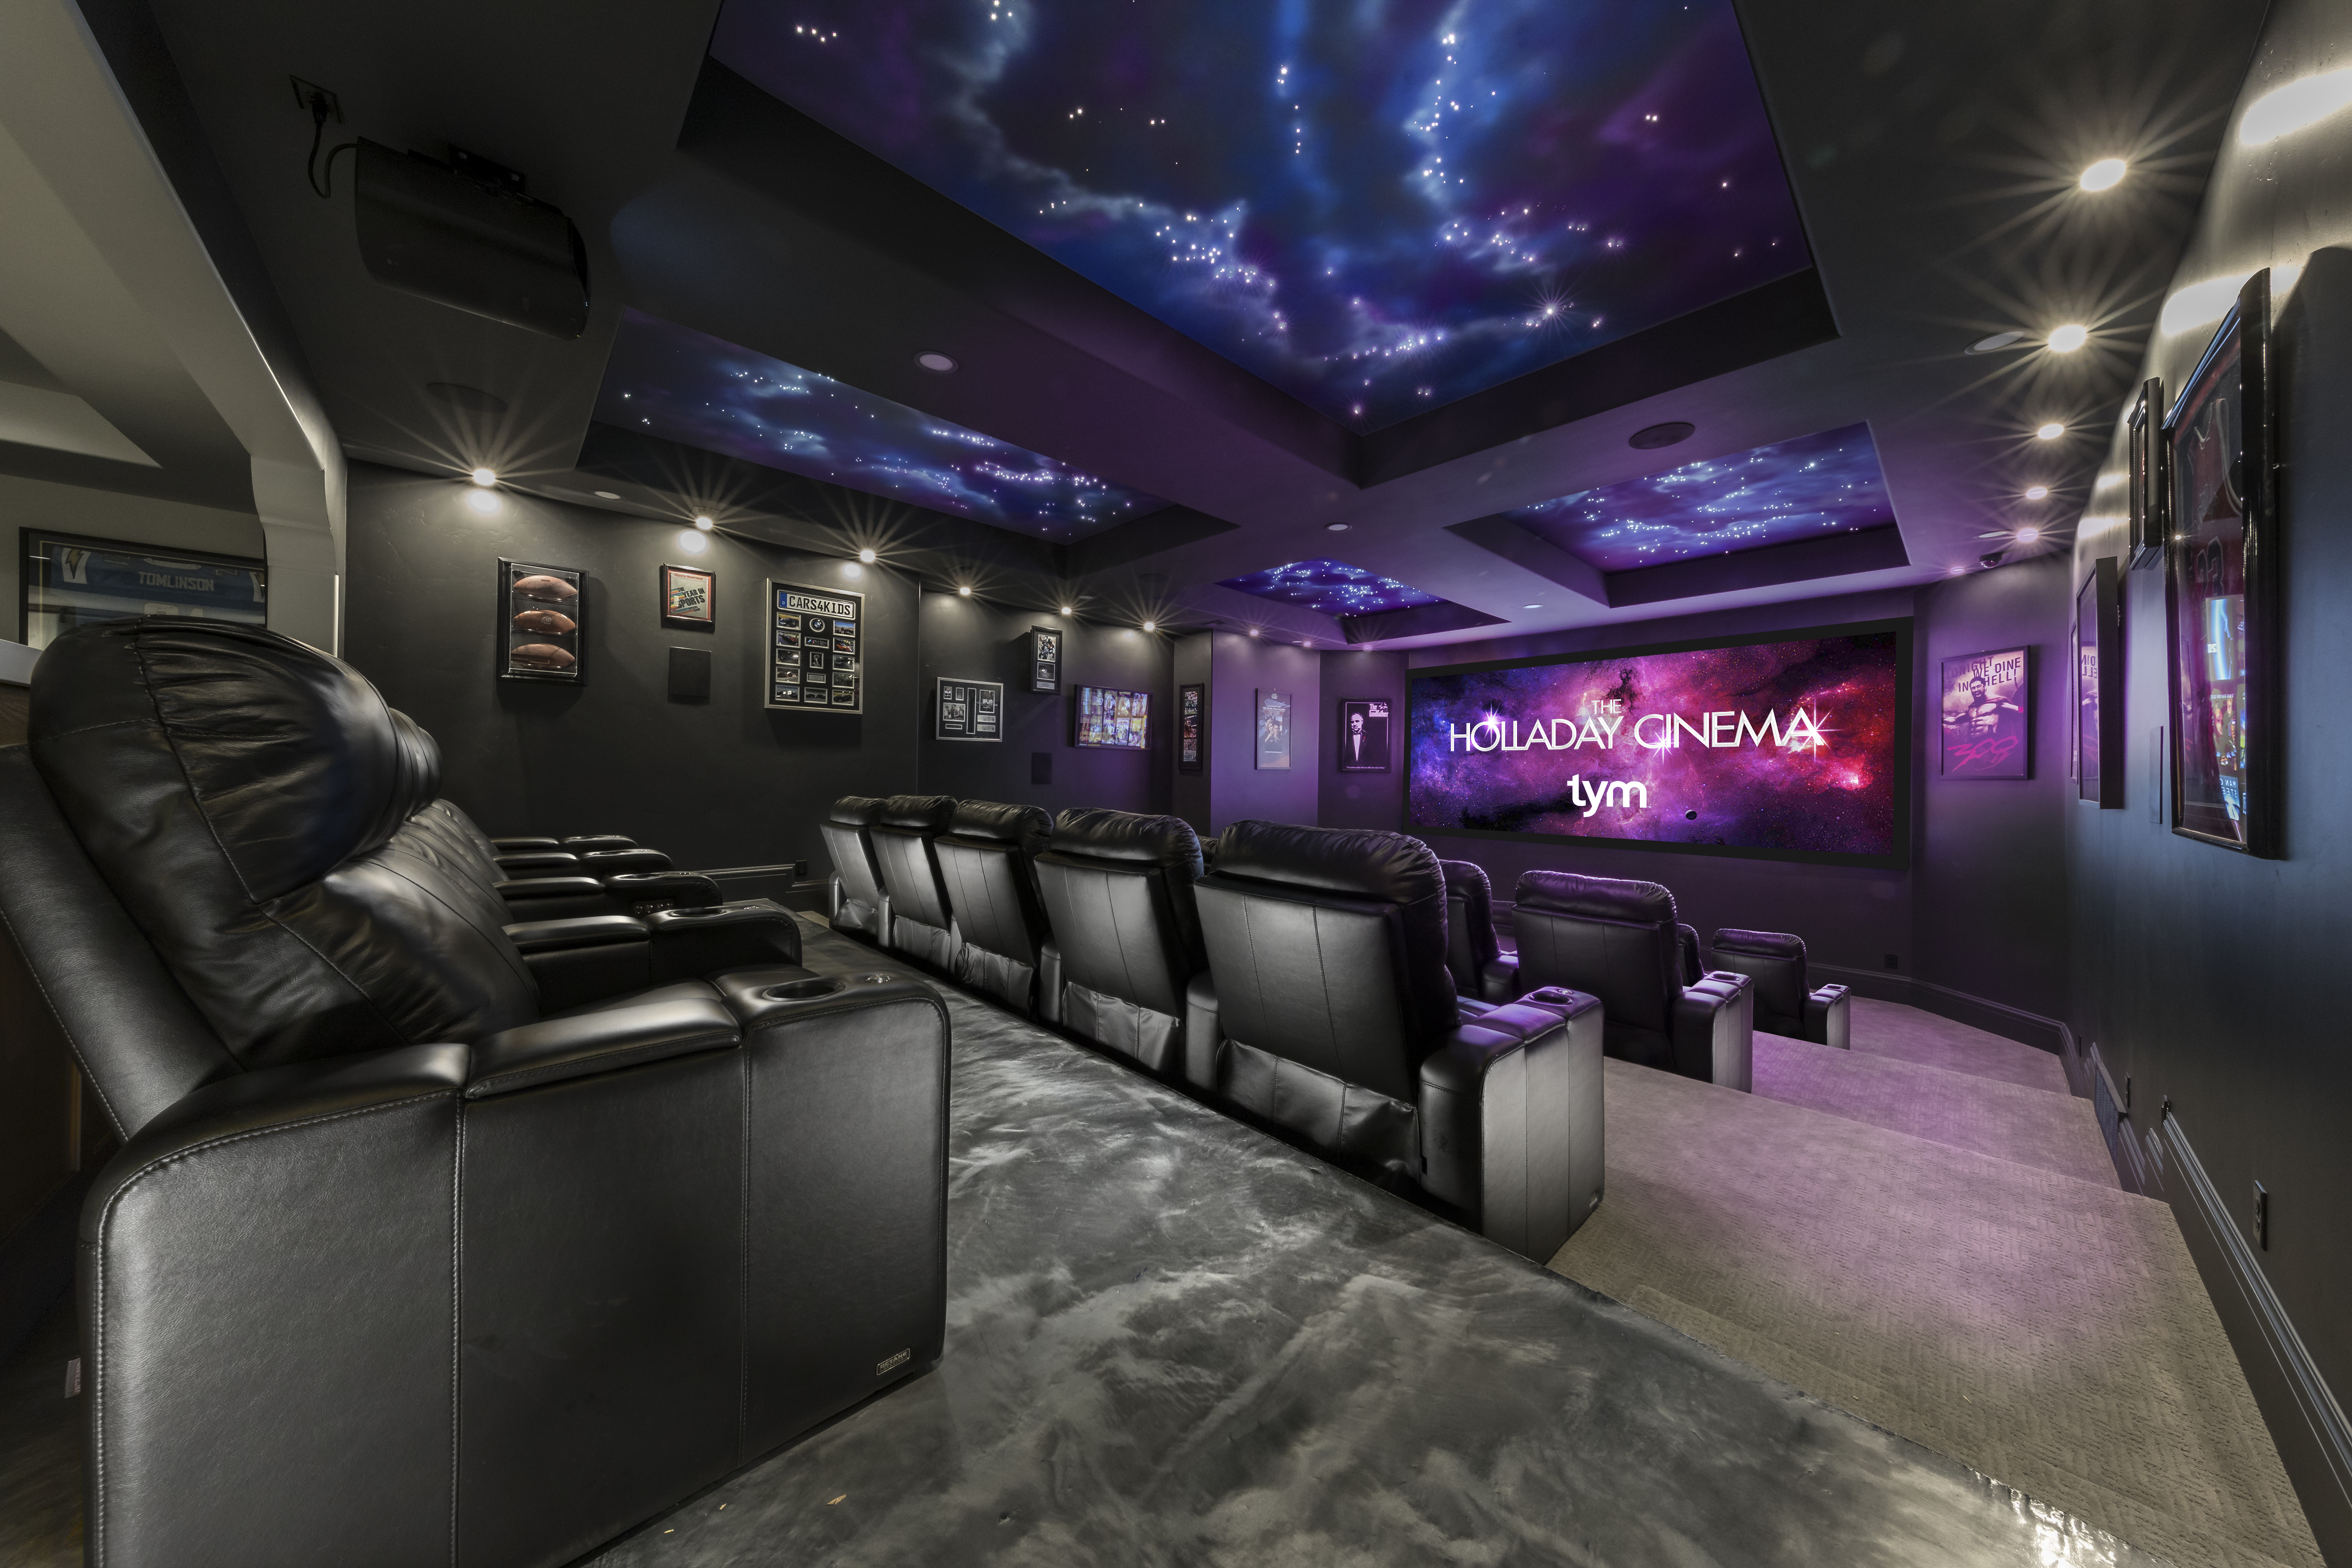 Luxul Featured in Award-Winning Home Theater, The Holladay Cinema on home design styles, cable design, new pc design, home wireless design, outside plant design, camera design, home audio design, home theater media center pc, router design, house design, home lan design, home electrical wiring diagrams,